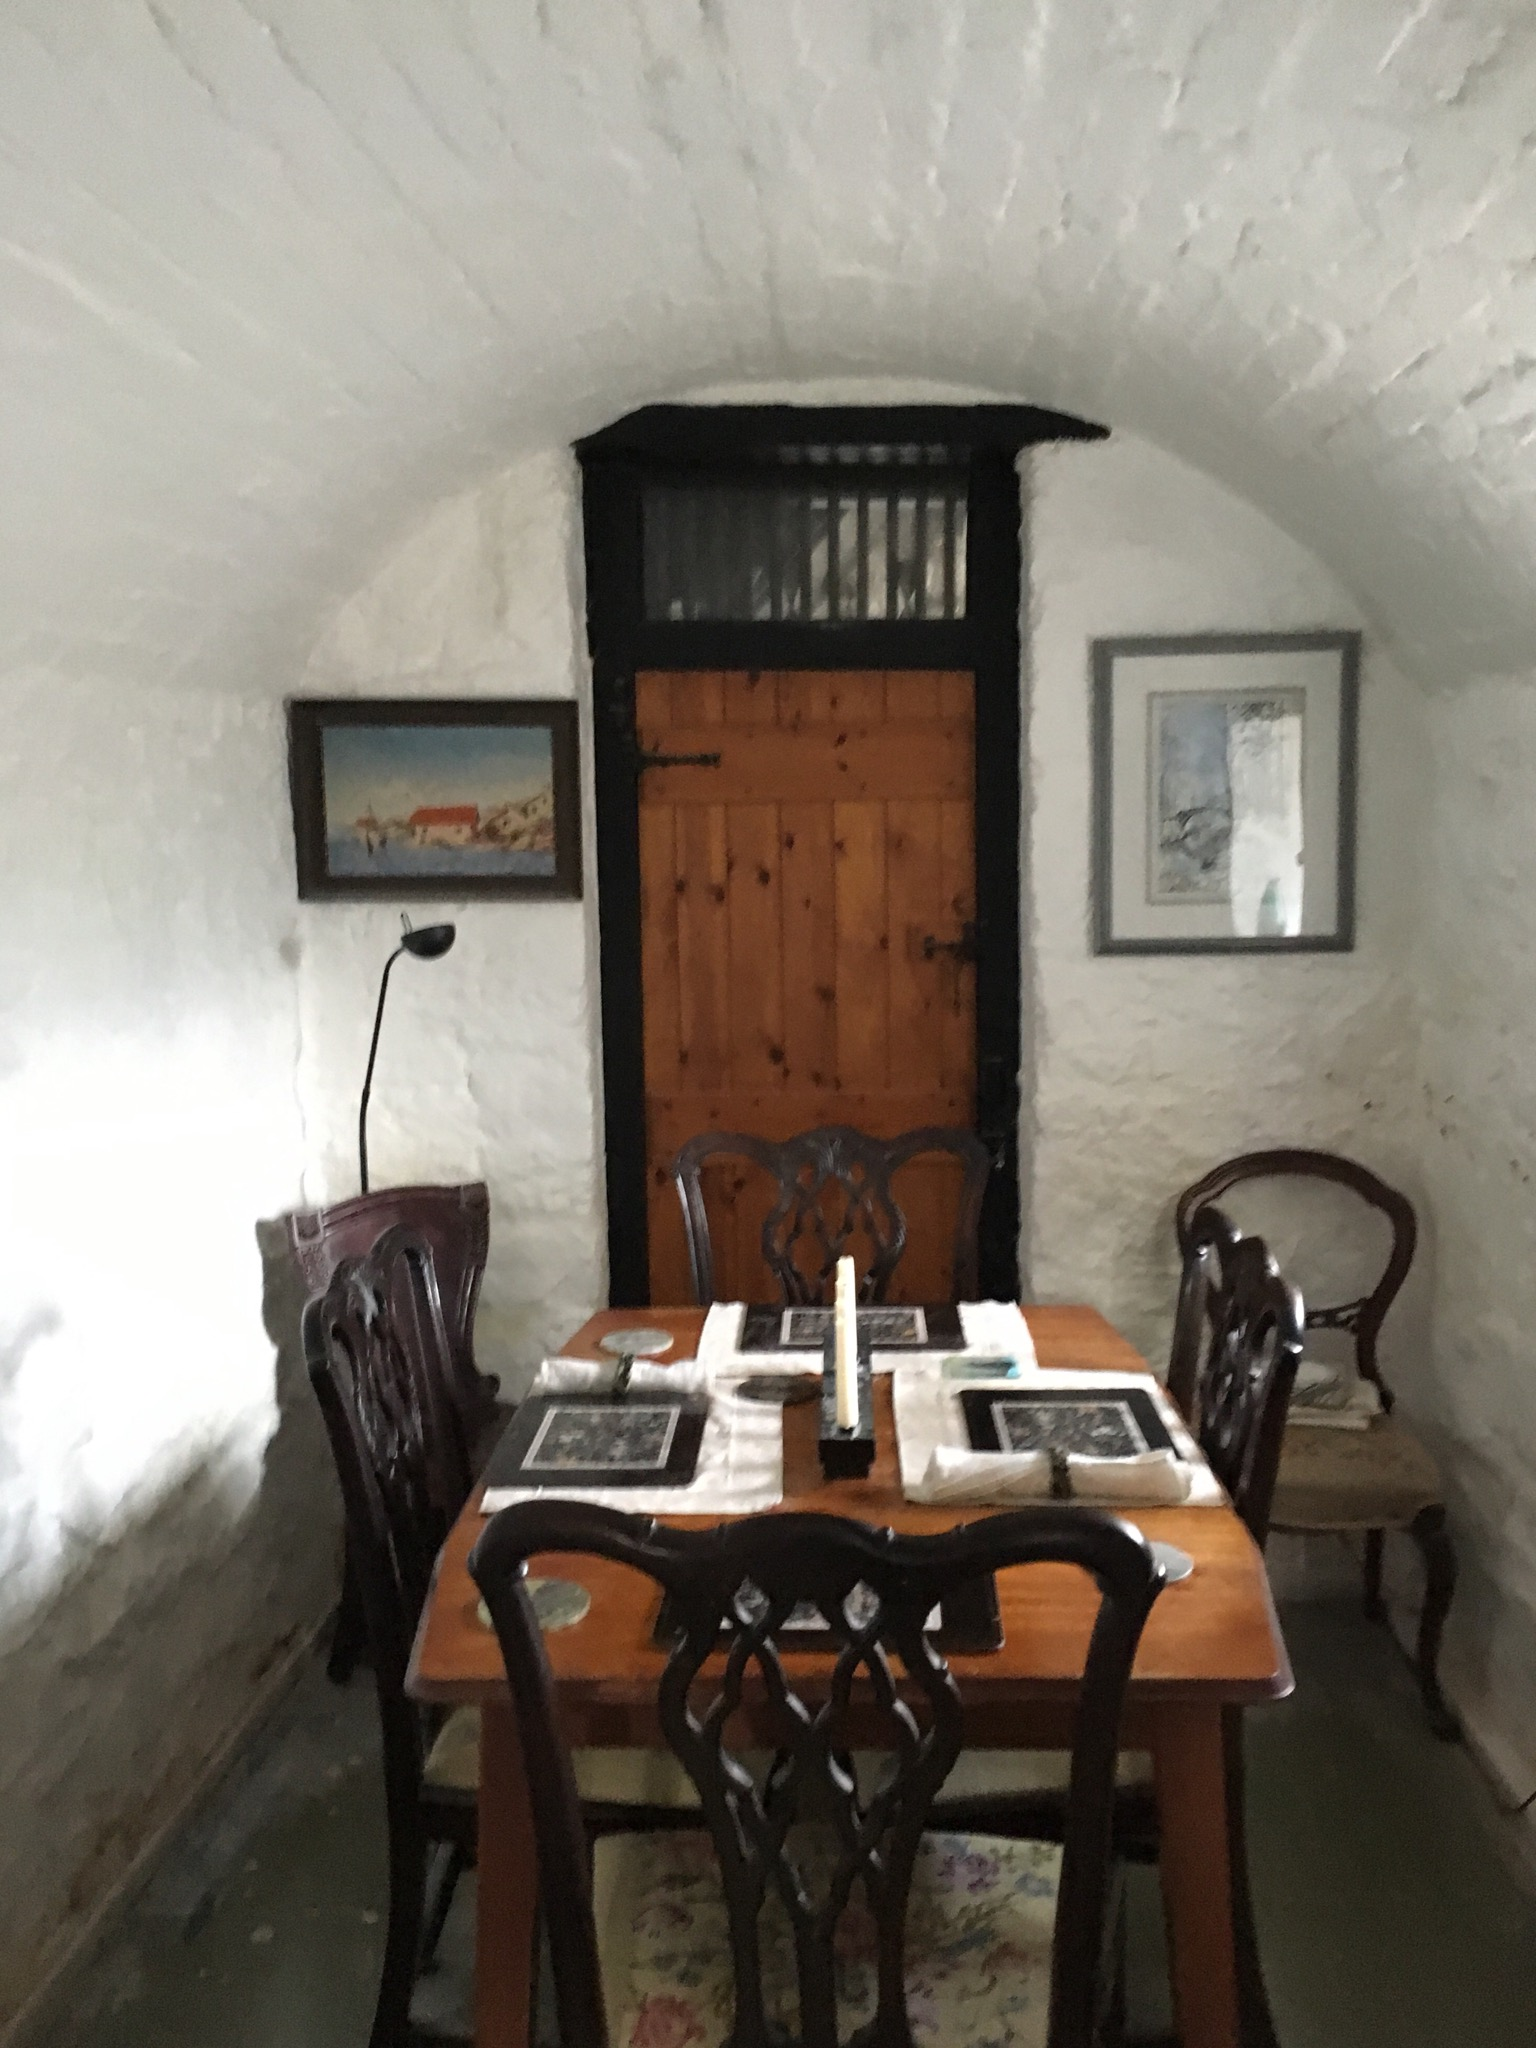 Original cell, now used as a dining room. Notable features include the vaulted ceiling and the cell doorway.